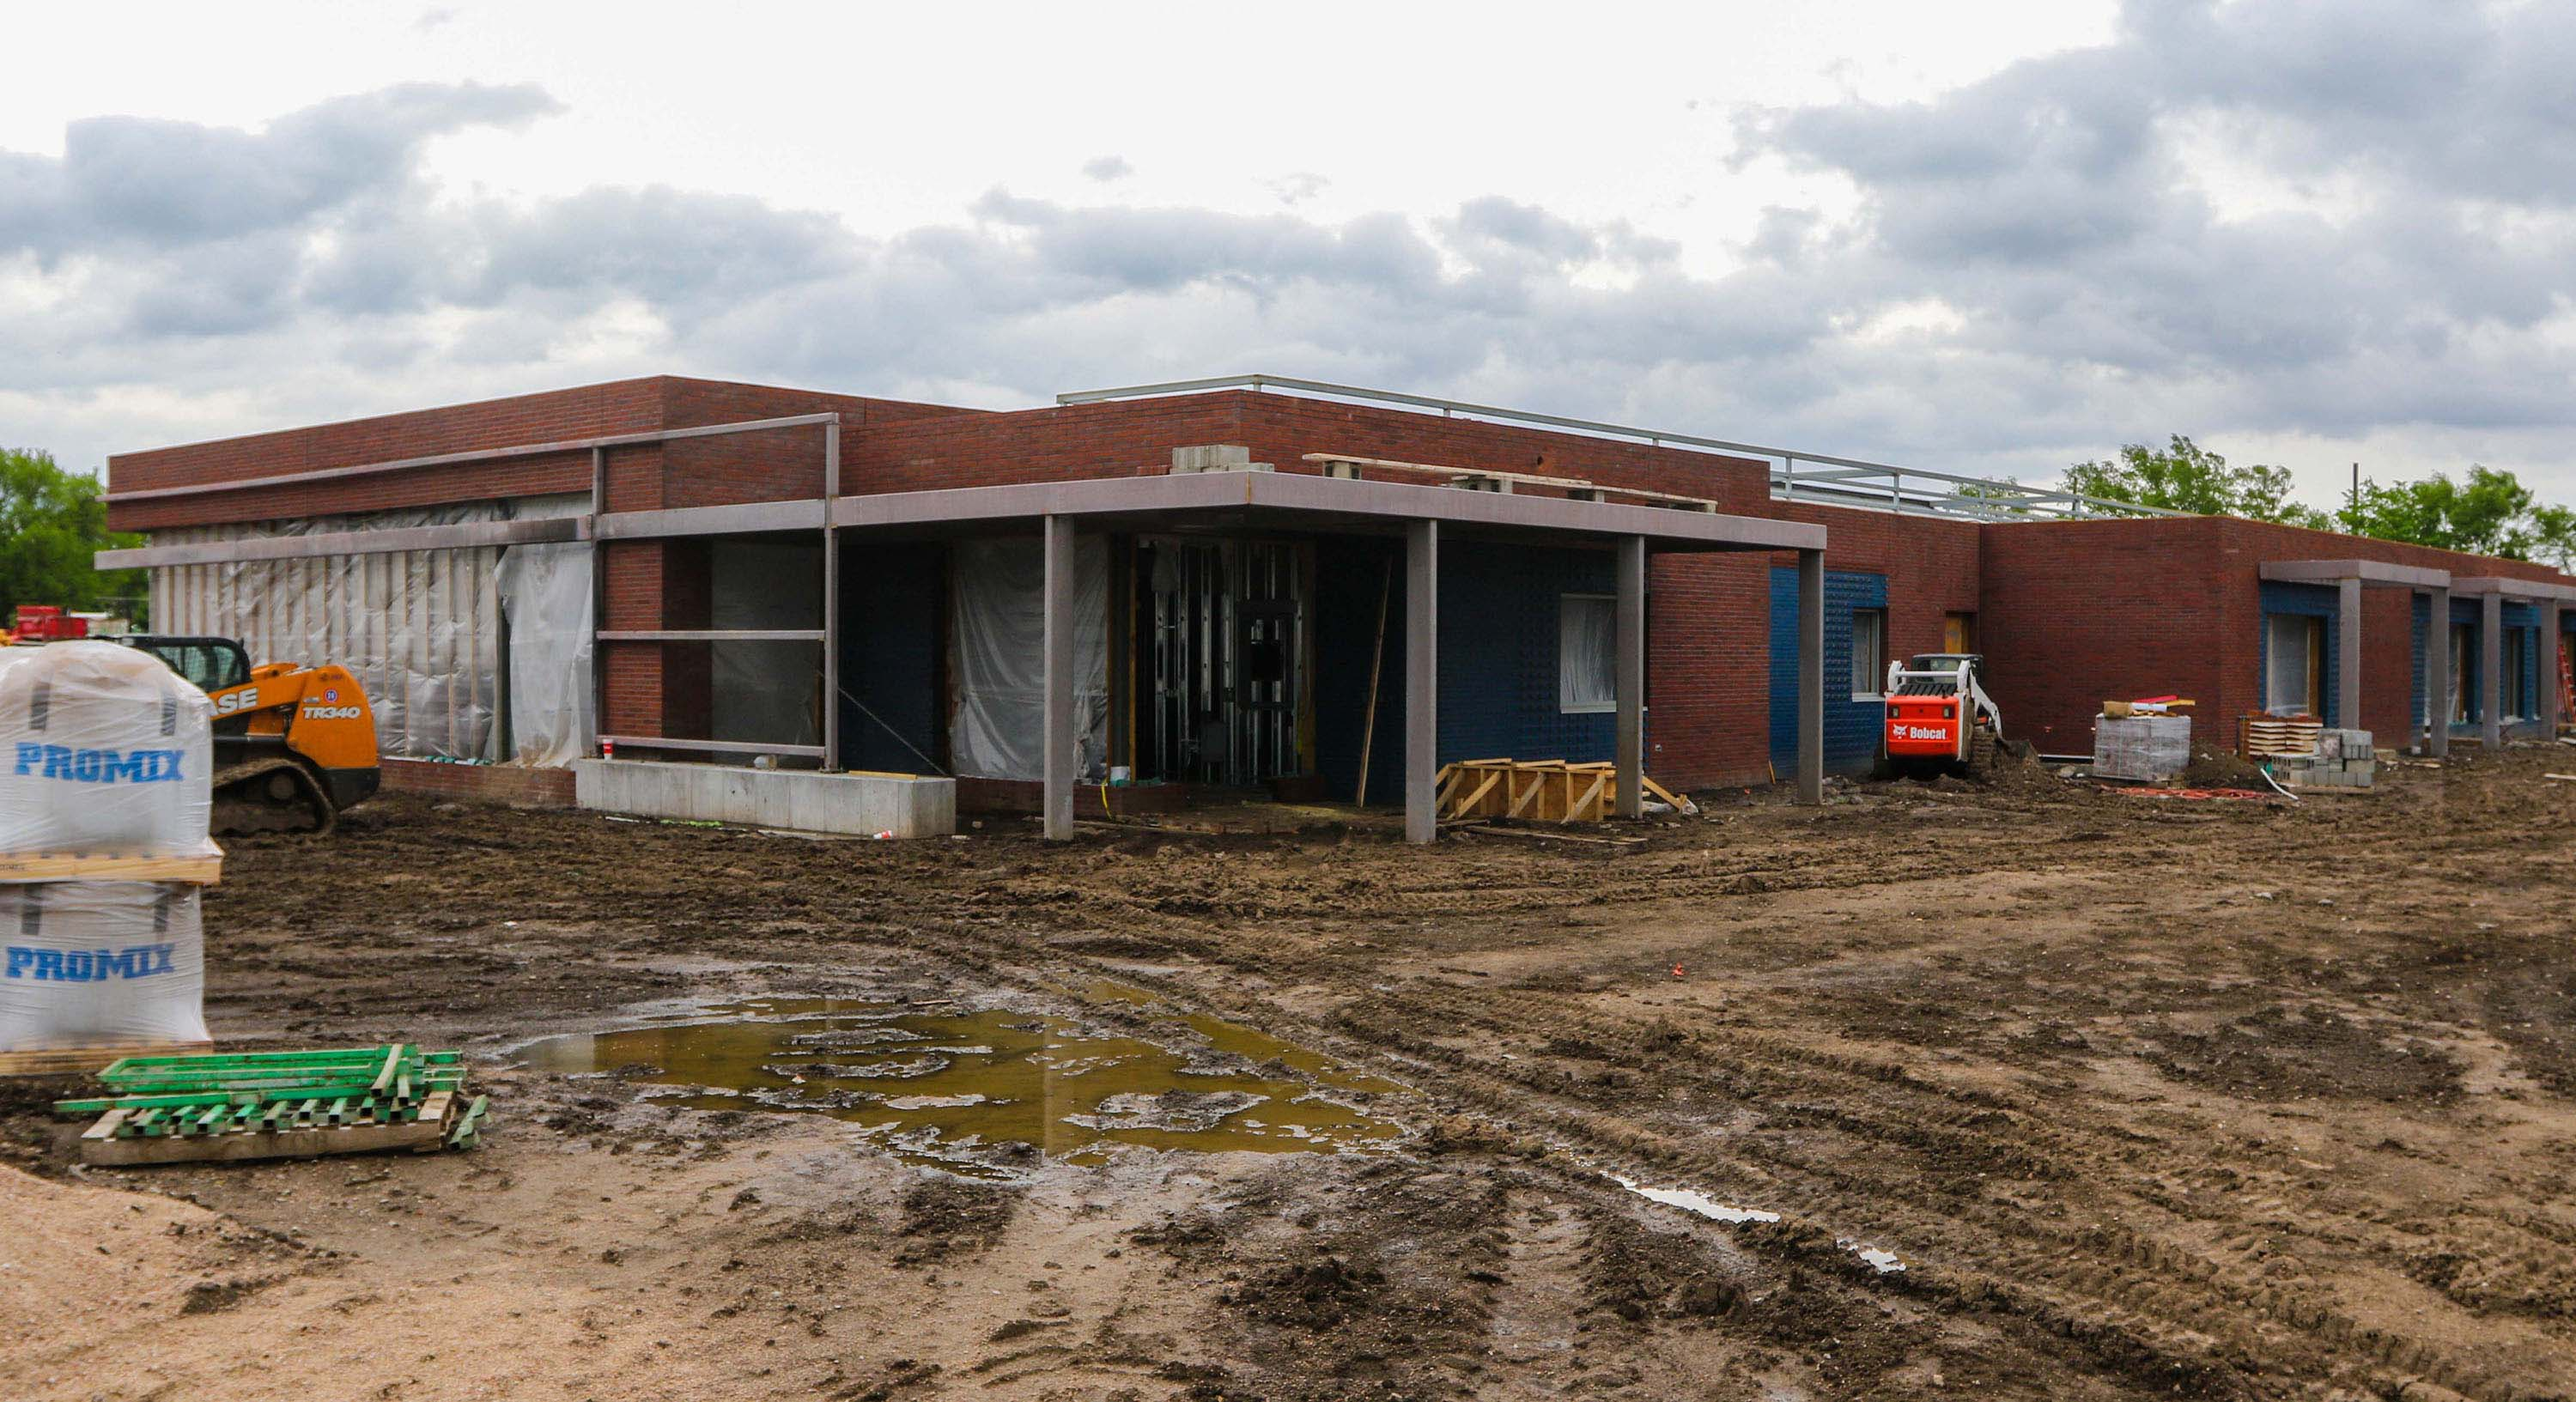 The LaVonne Kopecky Plambeck Early Childhood Education Center is scheduled to open in September on UNK's University Village development just south of U.S. Highway 30. (Photo by Todd Gottula, UNK Communications)